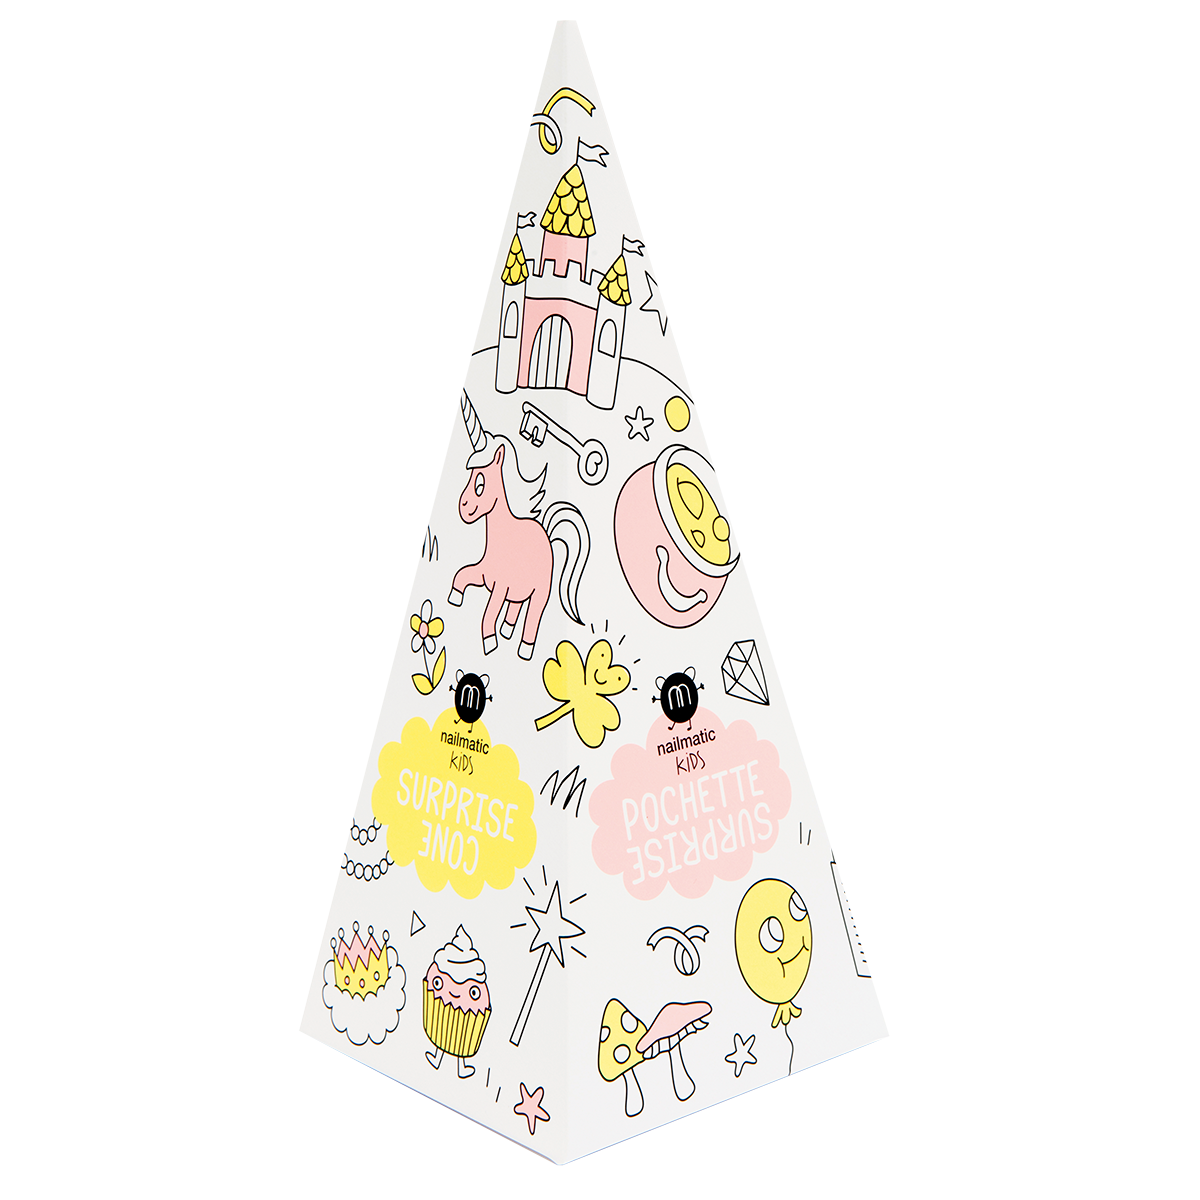 Nailmatic Kids Princess Surprise Cone dāvanu komplekts, Sheepy NKPRINCESS 7290